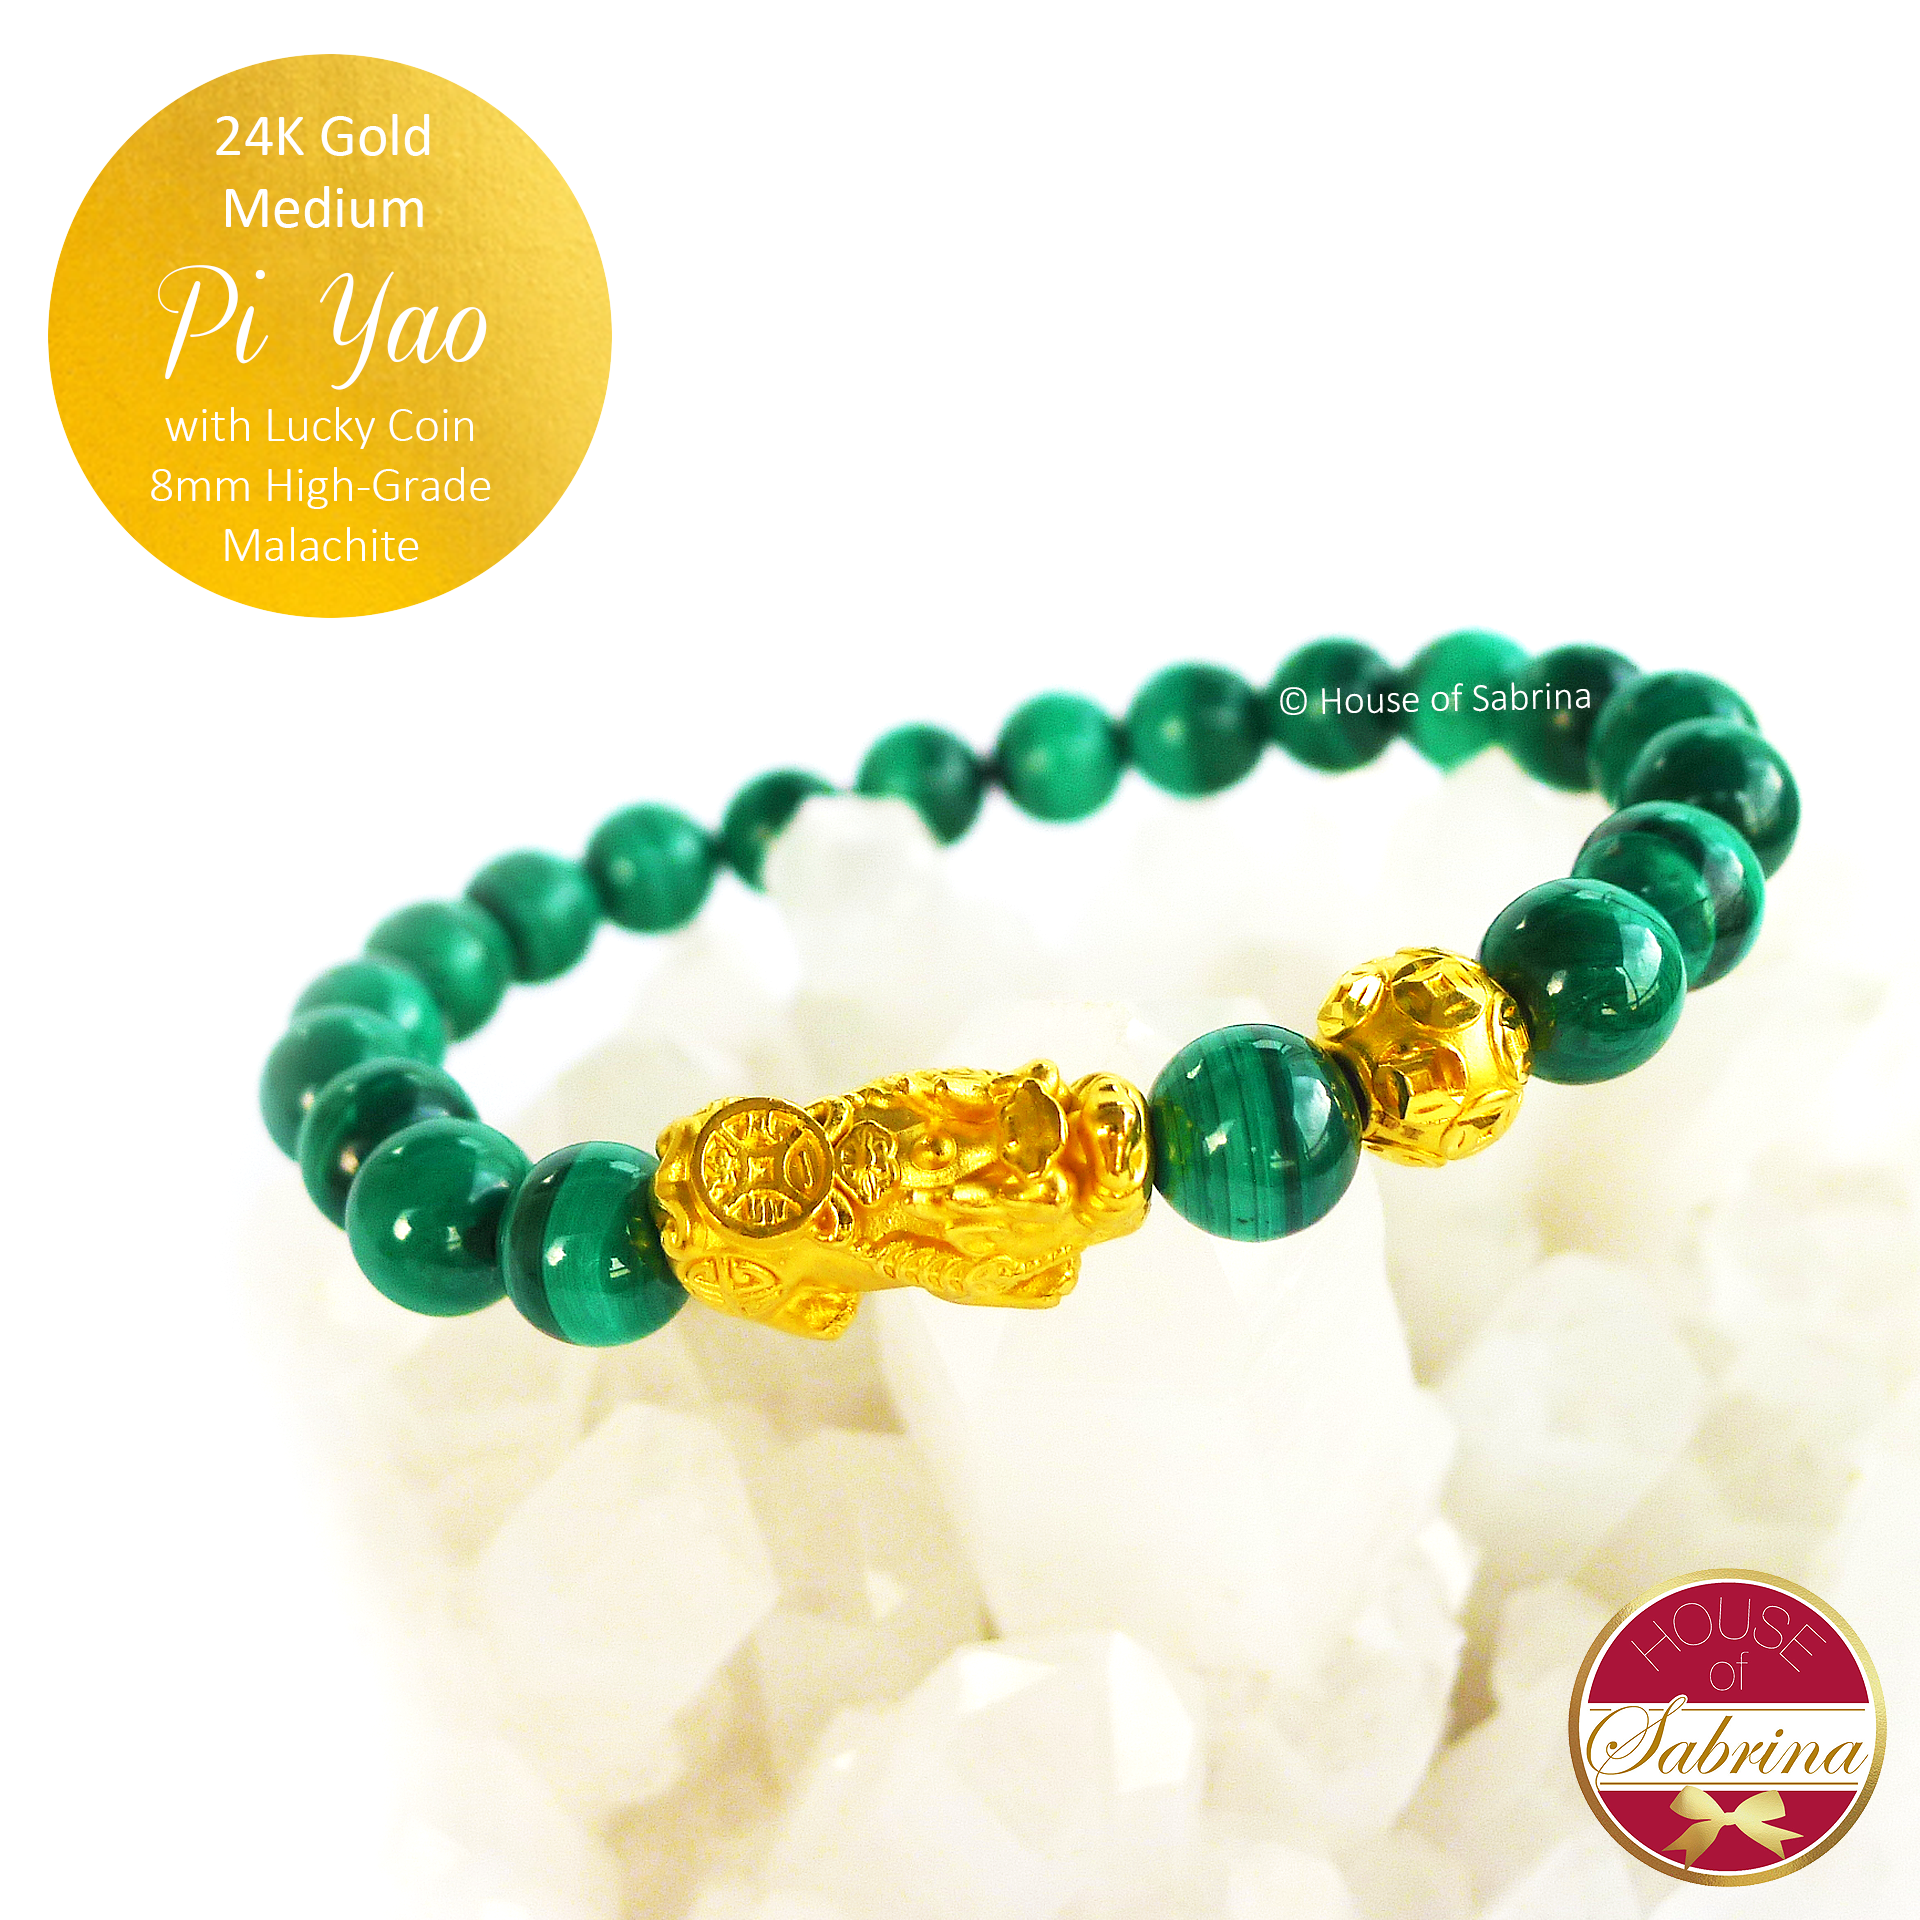 24K Gold Medium Pi Yao with Lucky Coin on High Grade Malachite Gemstone Bracelet